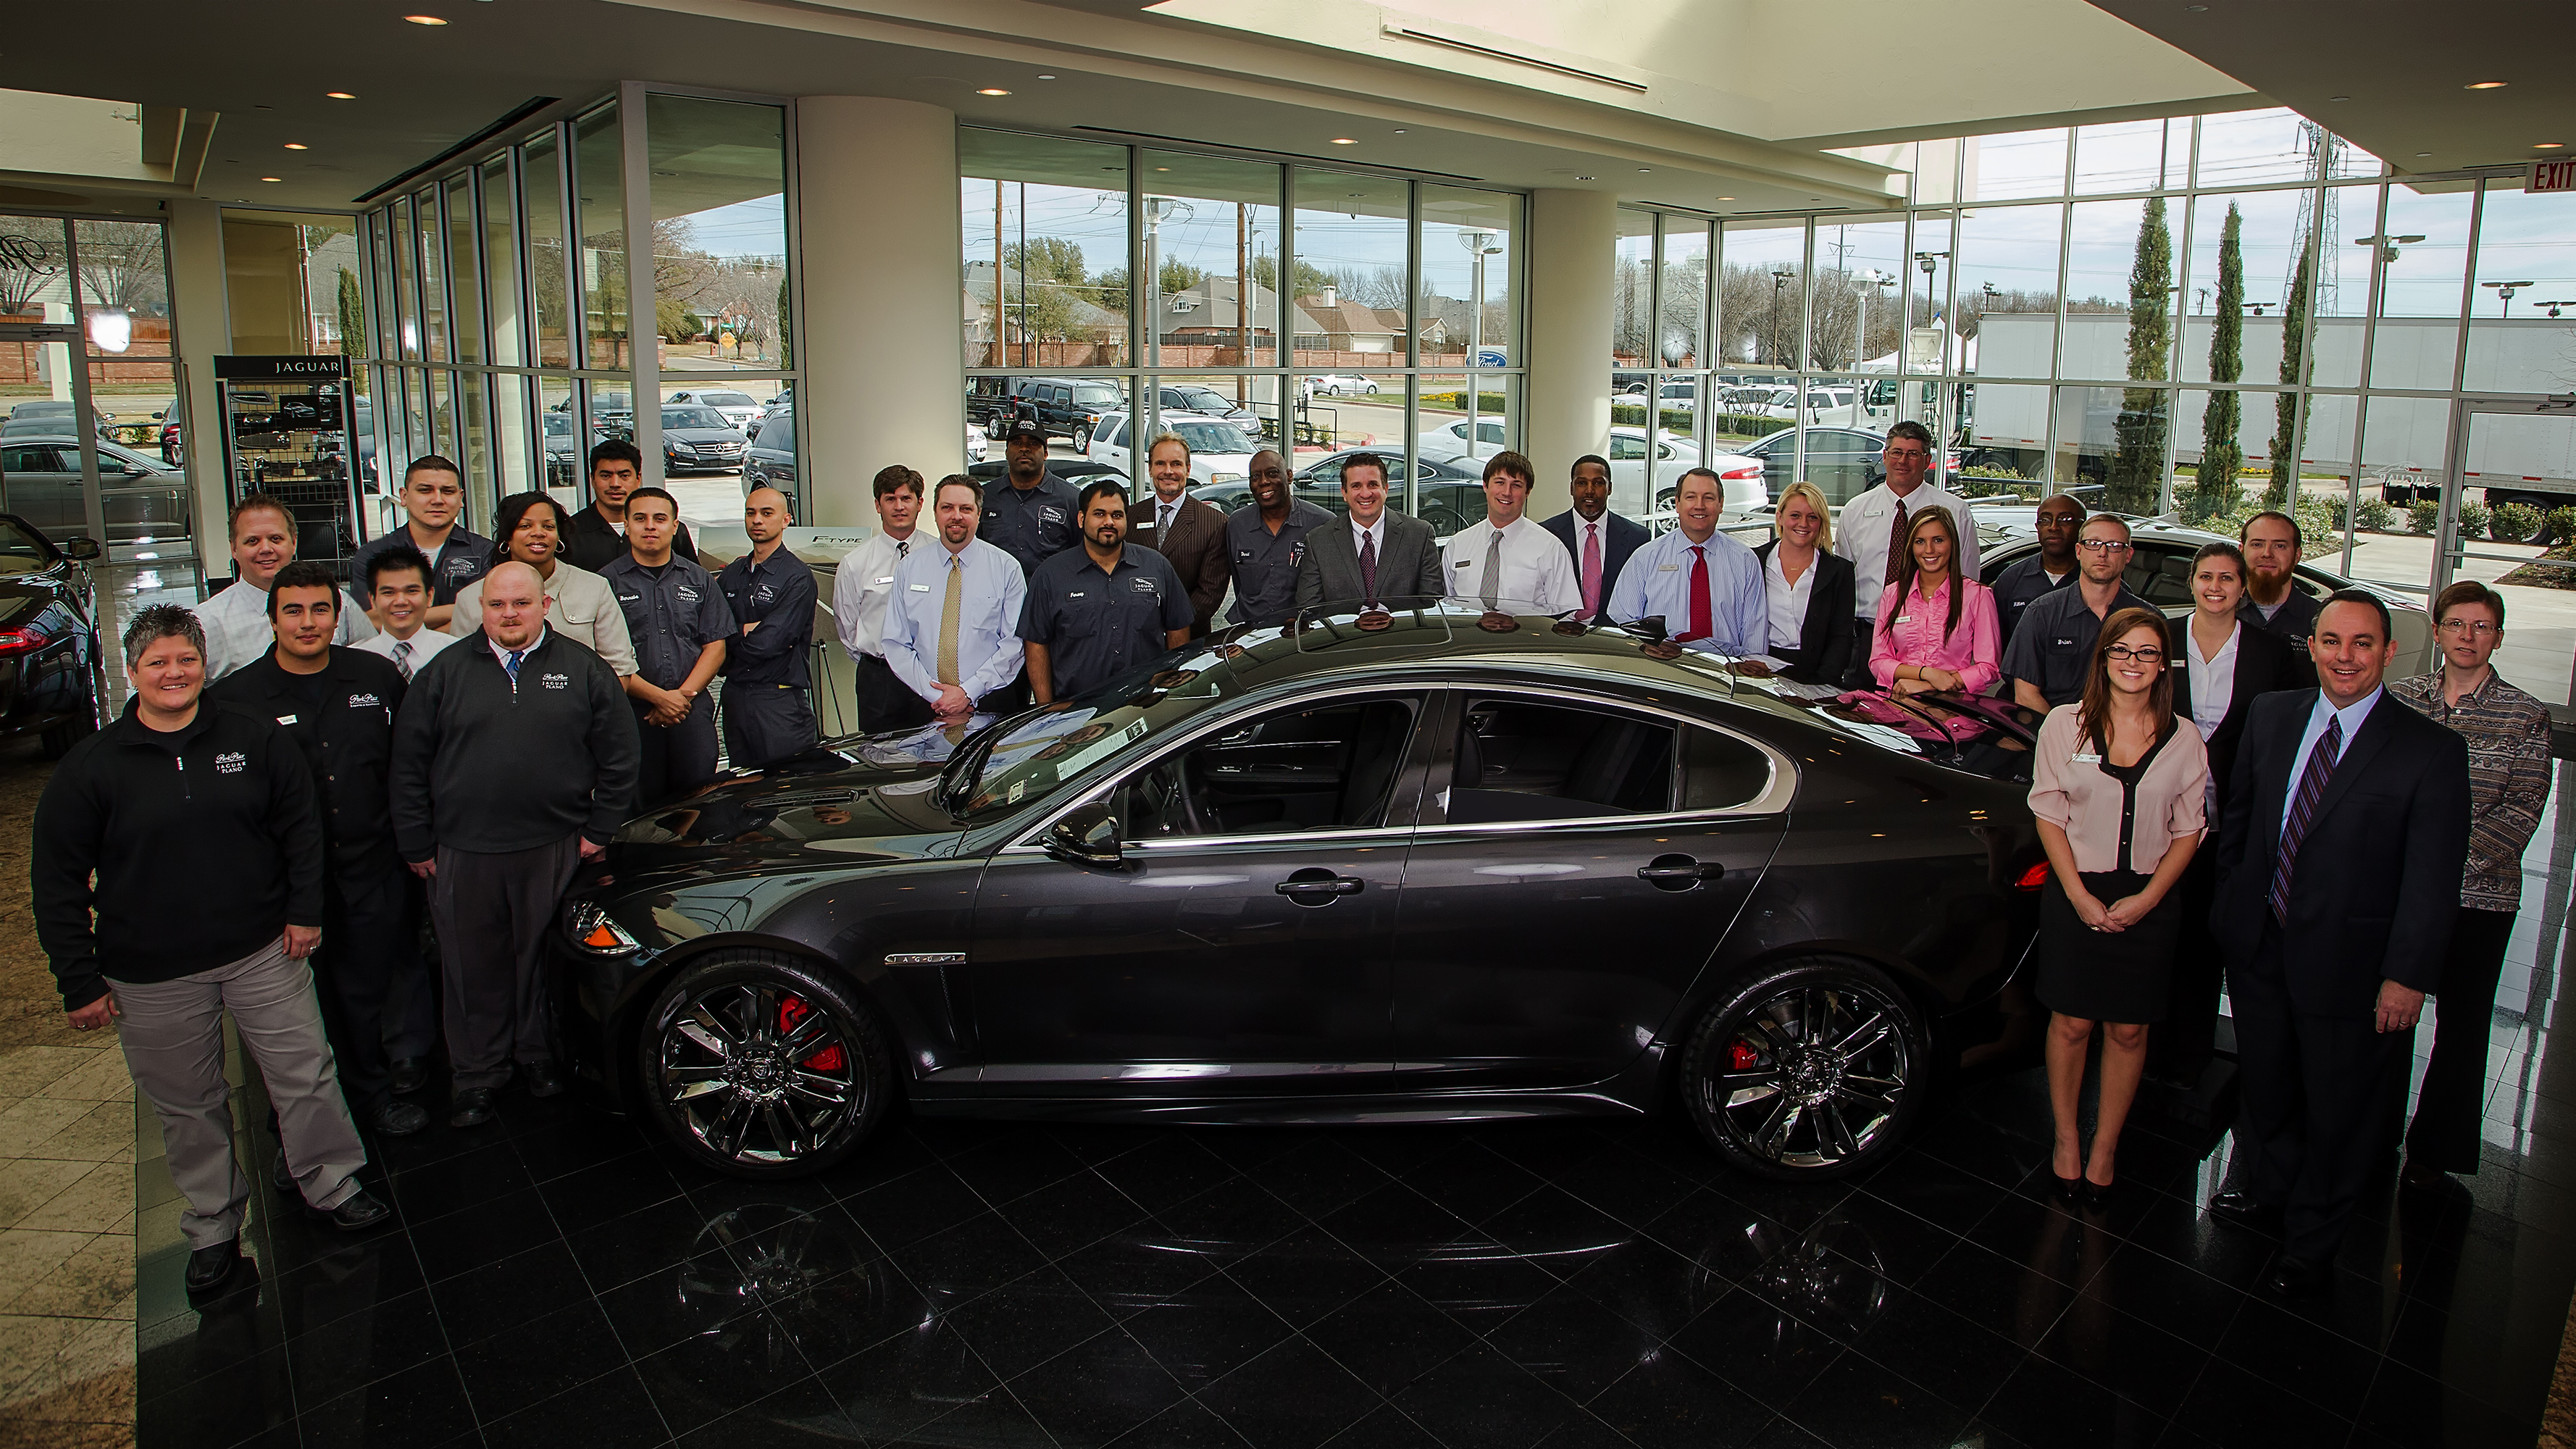 Delightful Park Place Jaguar Wins Second Pride Of Jaguar Award | Business | Dallas News